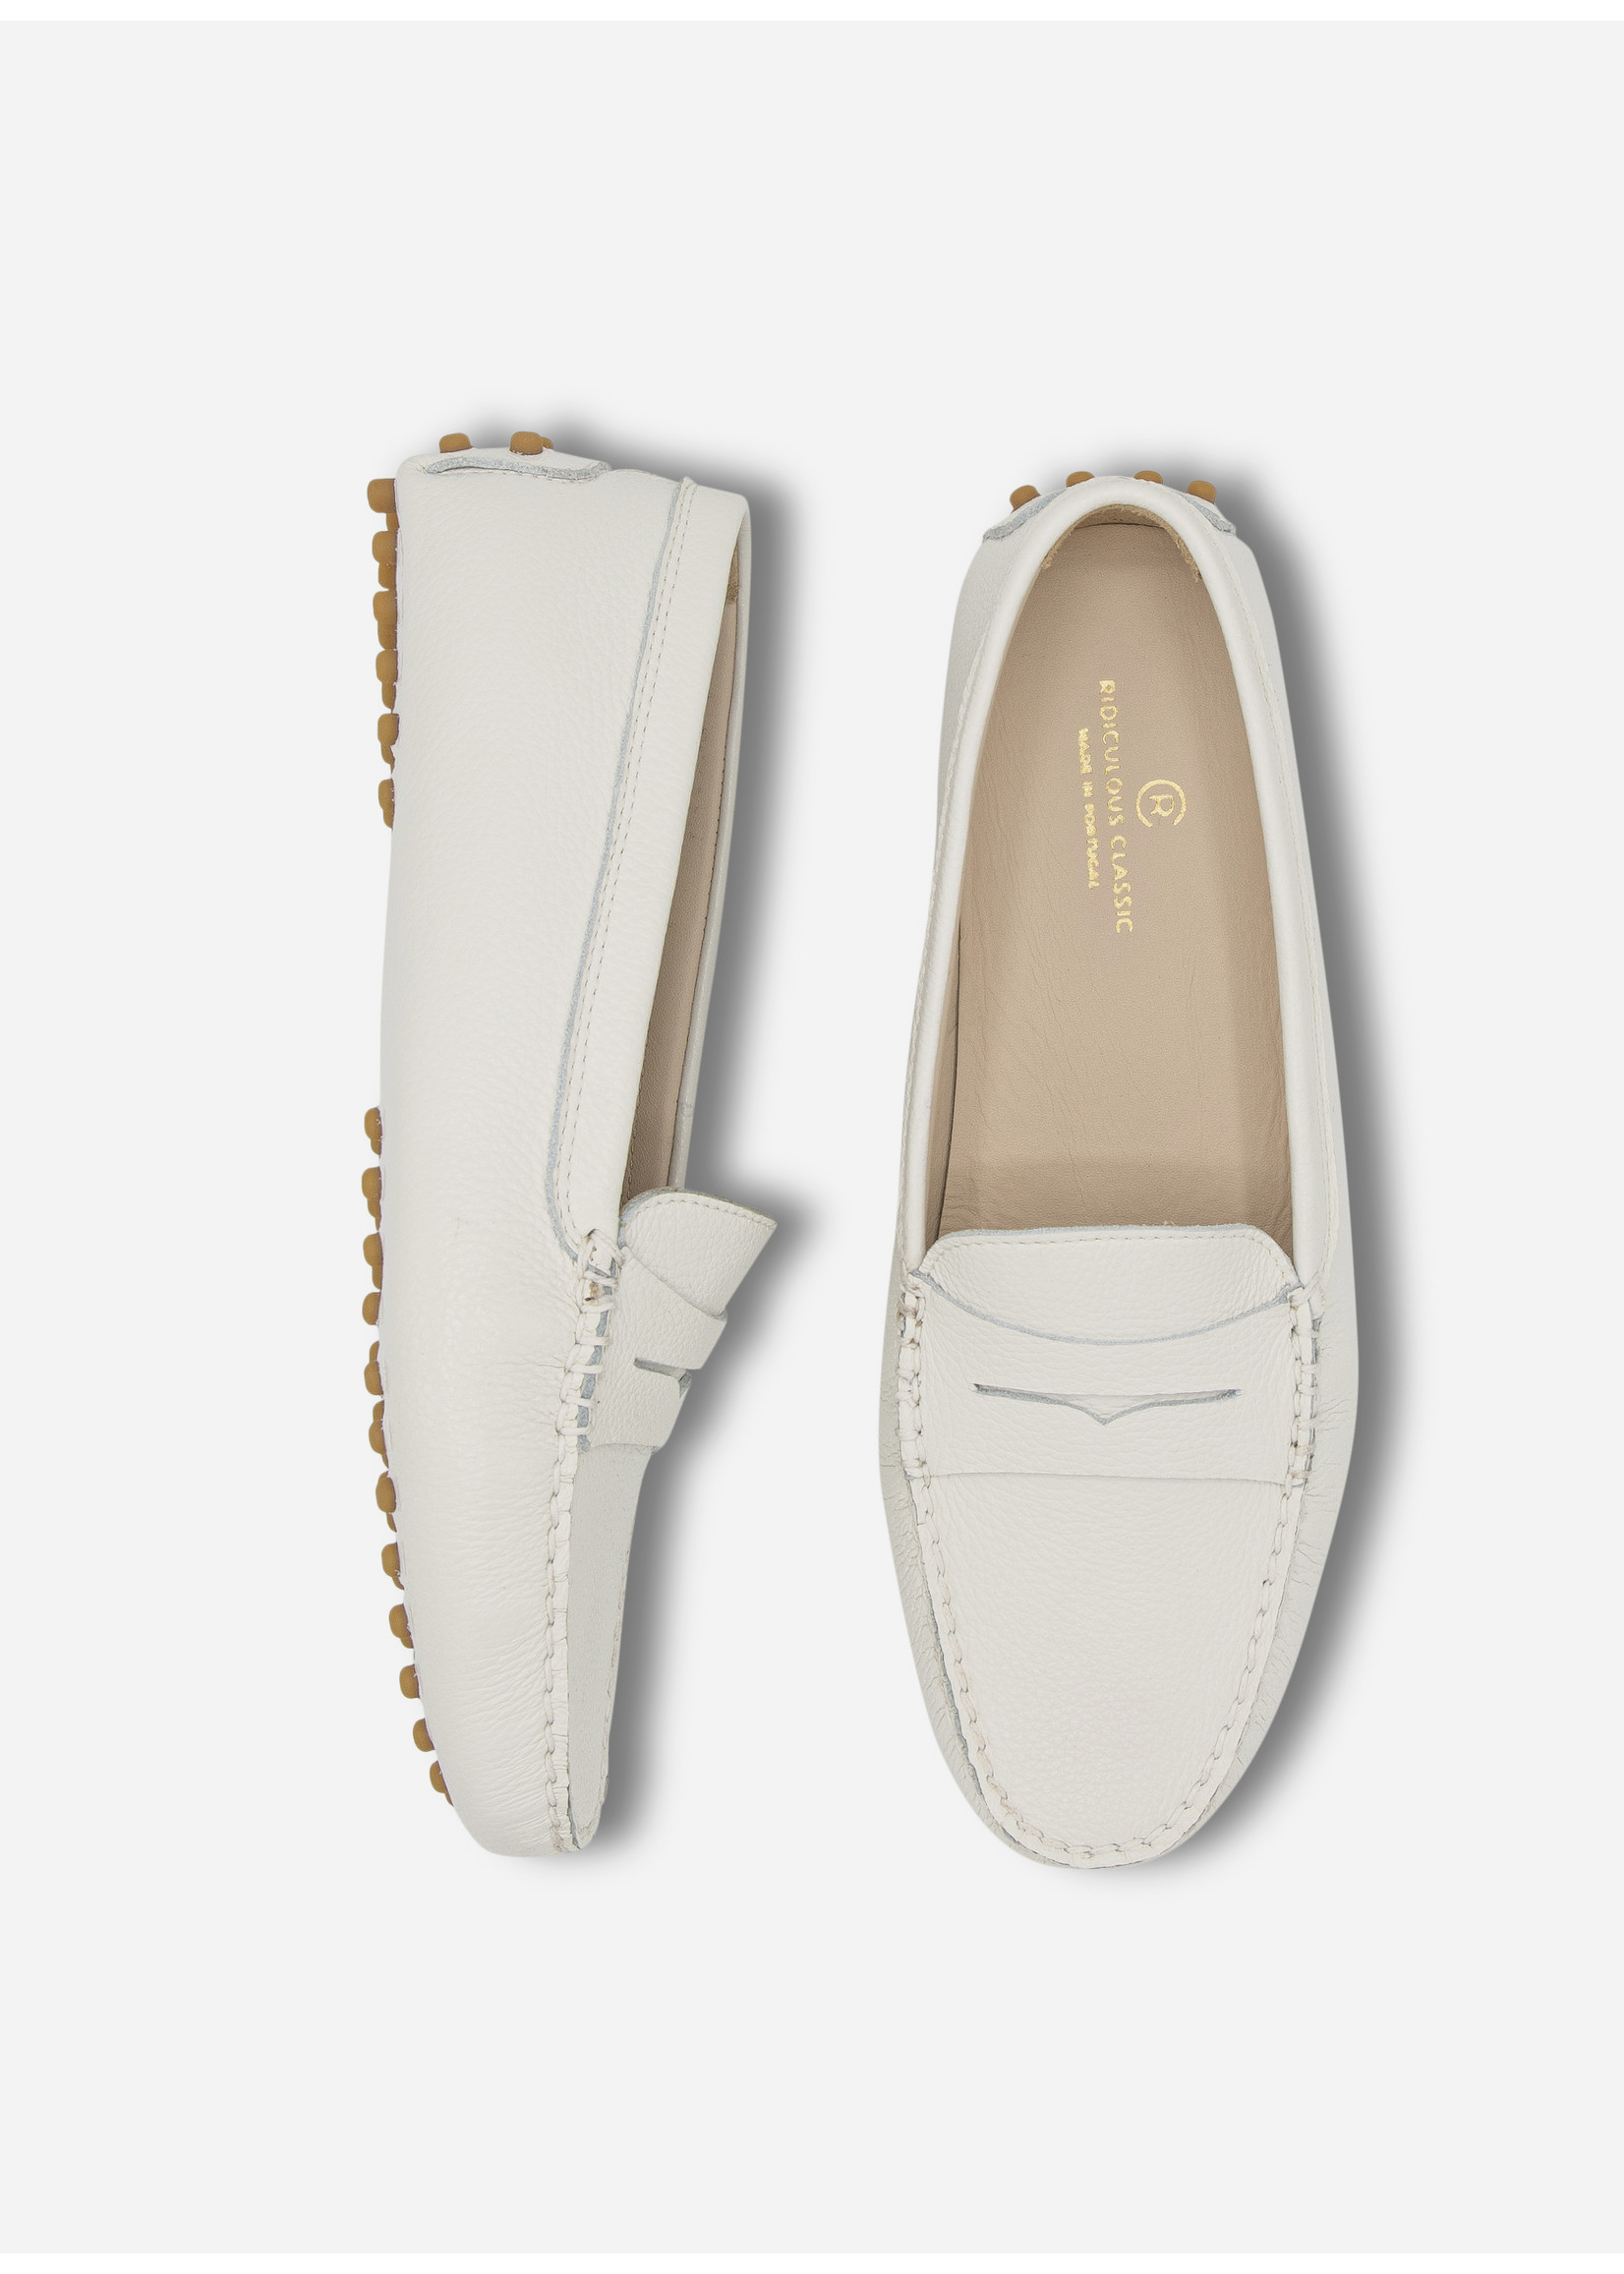 Ridiculous Classic Mocca Off-White